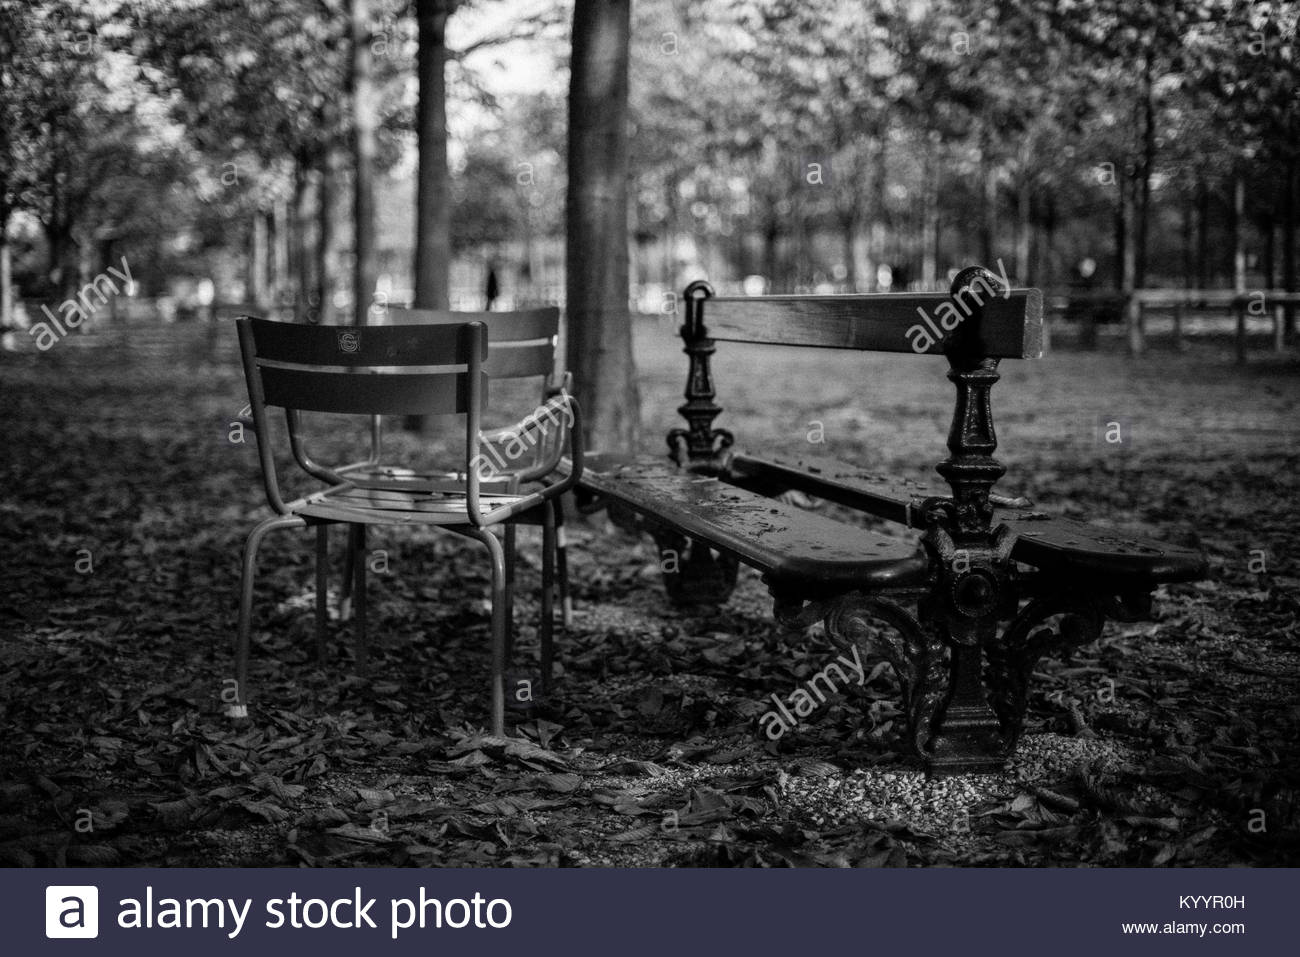 Two chairs and park bench at an autumnal and deserted Jardin du Luxembourg, Paris. Black and white. - Stock Image